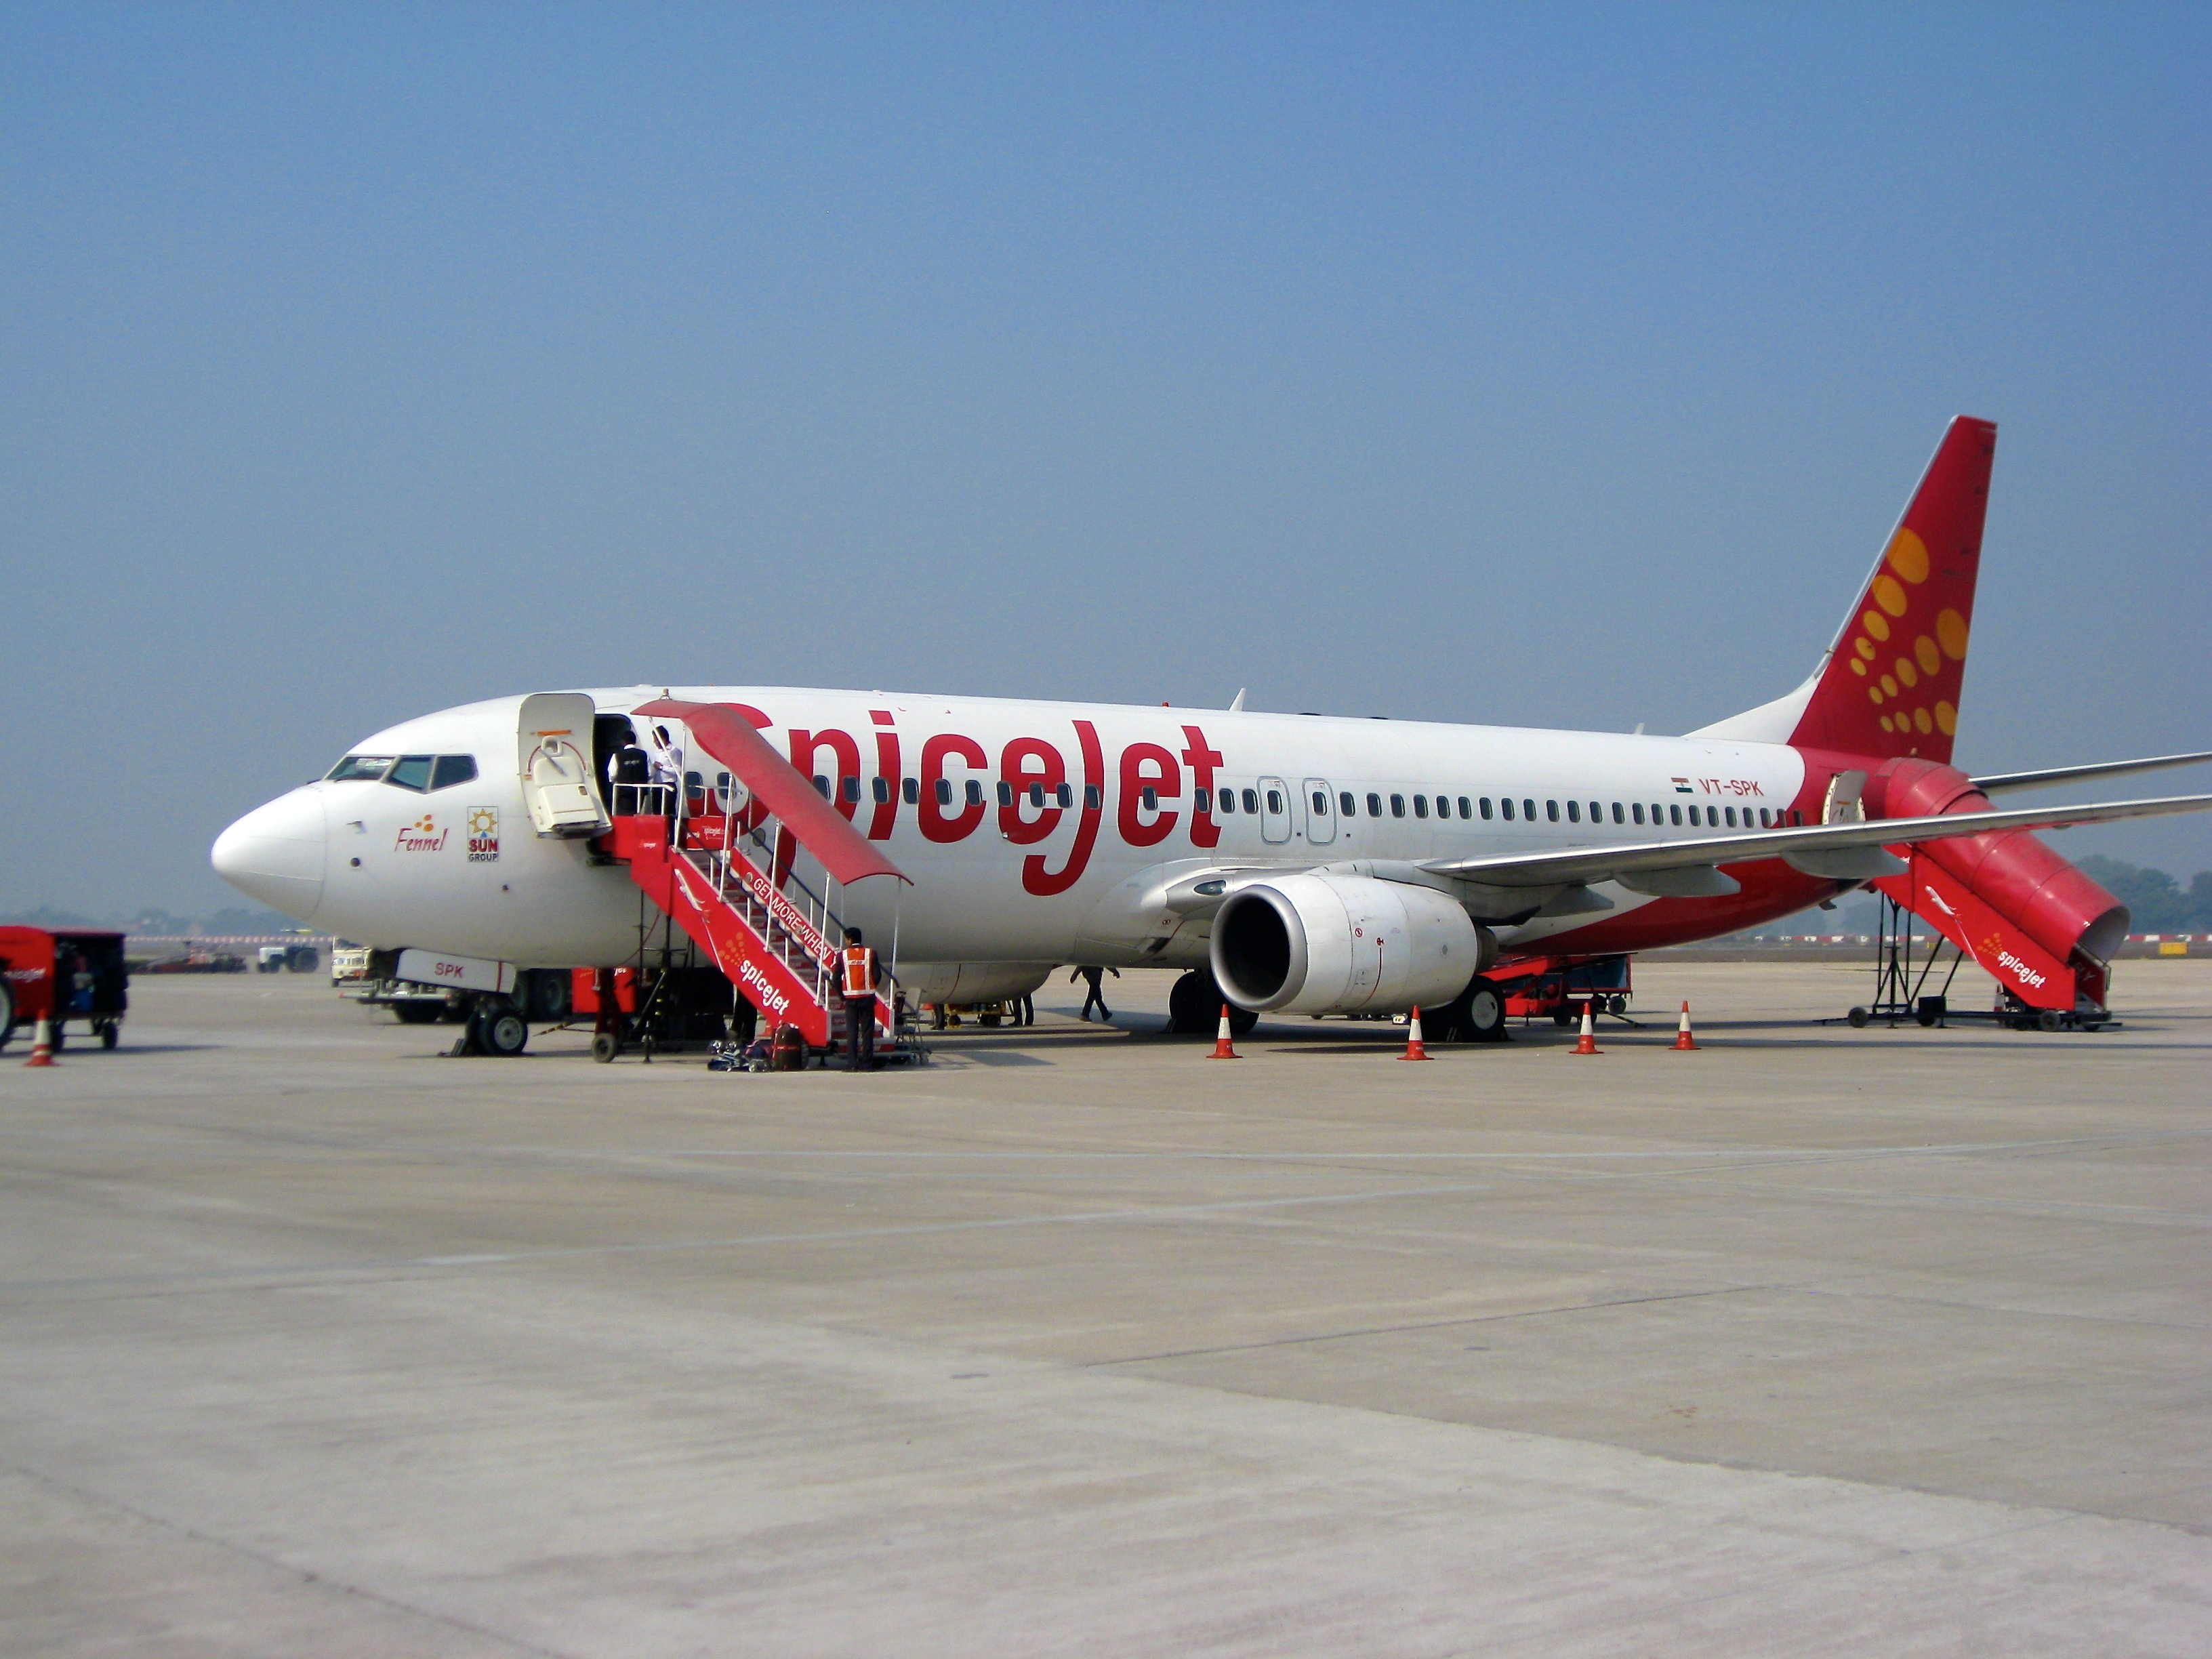 SPICEJET destinations - Wikipedia, the free encyclopedia